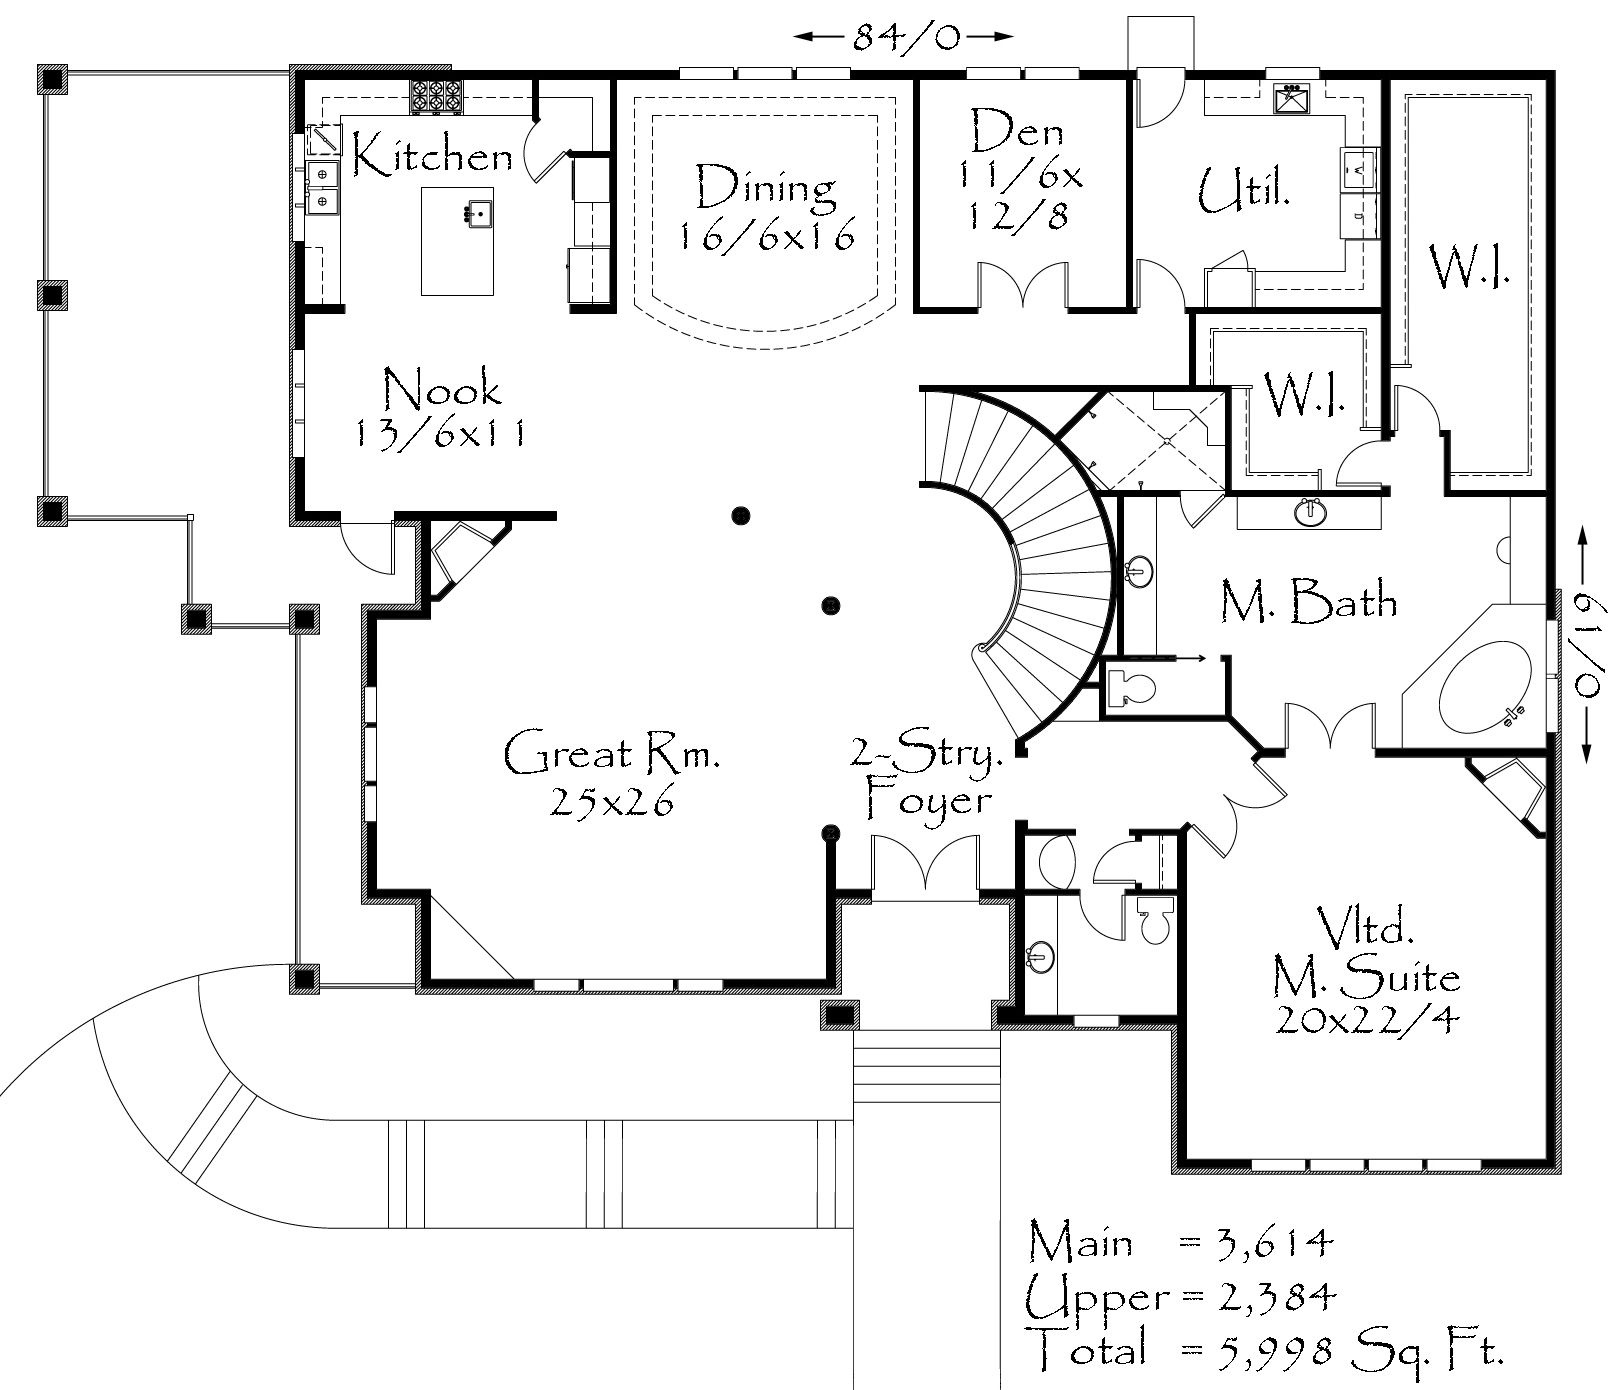 M 5999 House Plan Old World European Homes Country Style House Plans Country Floor Plans House Plans